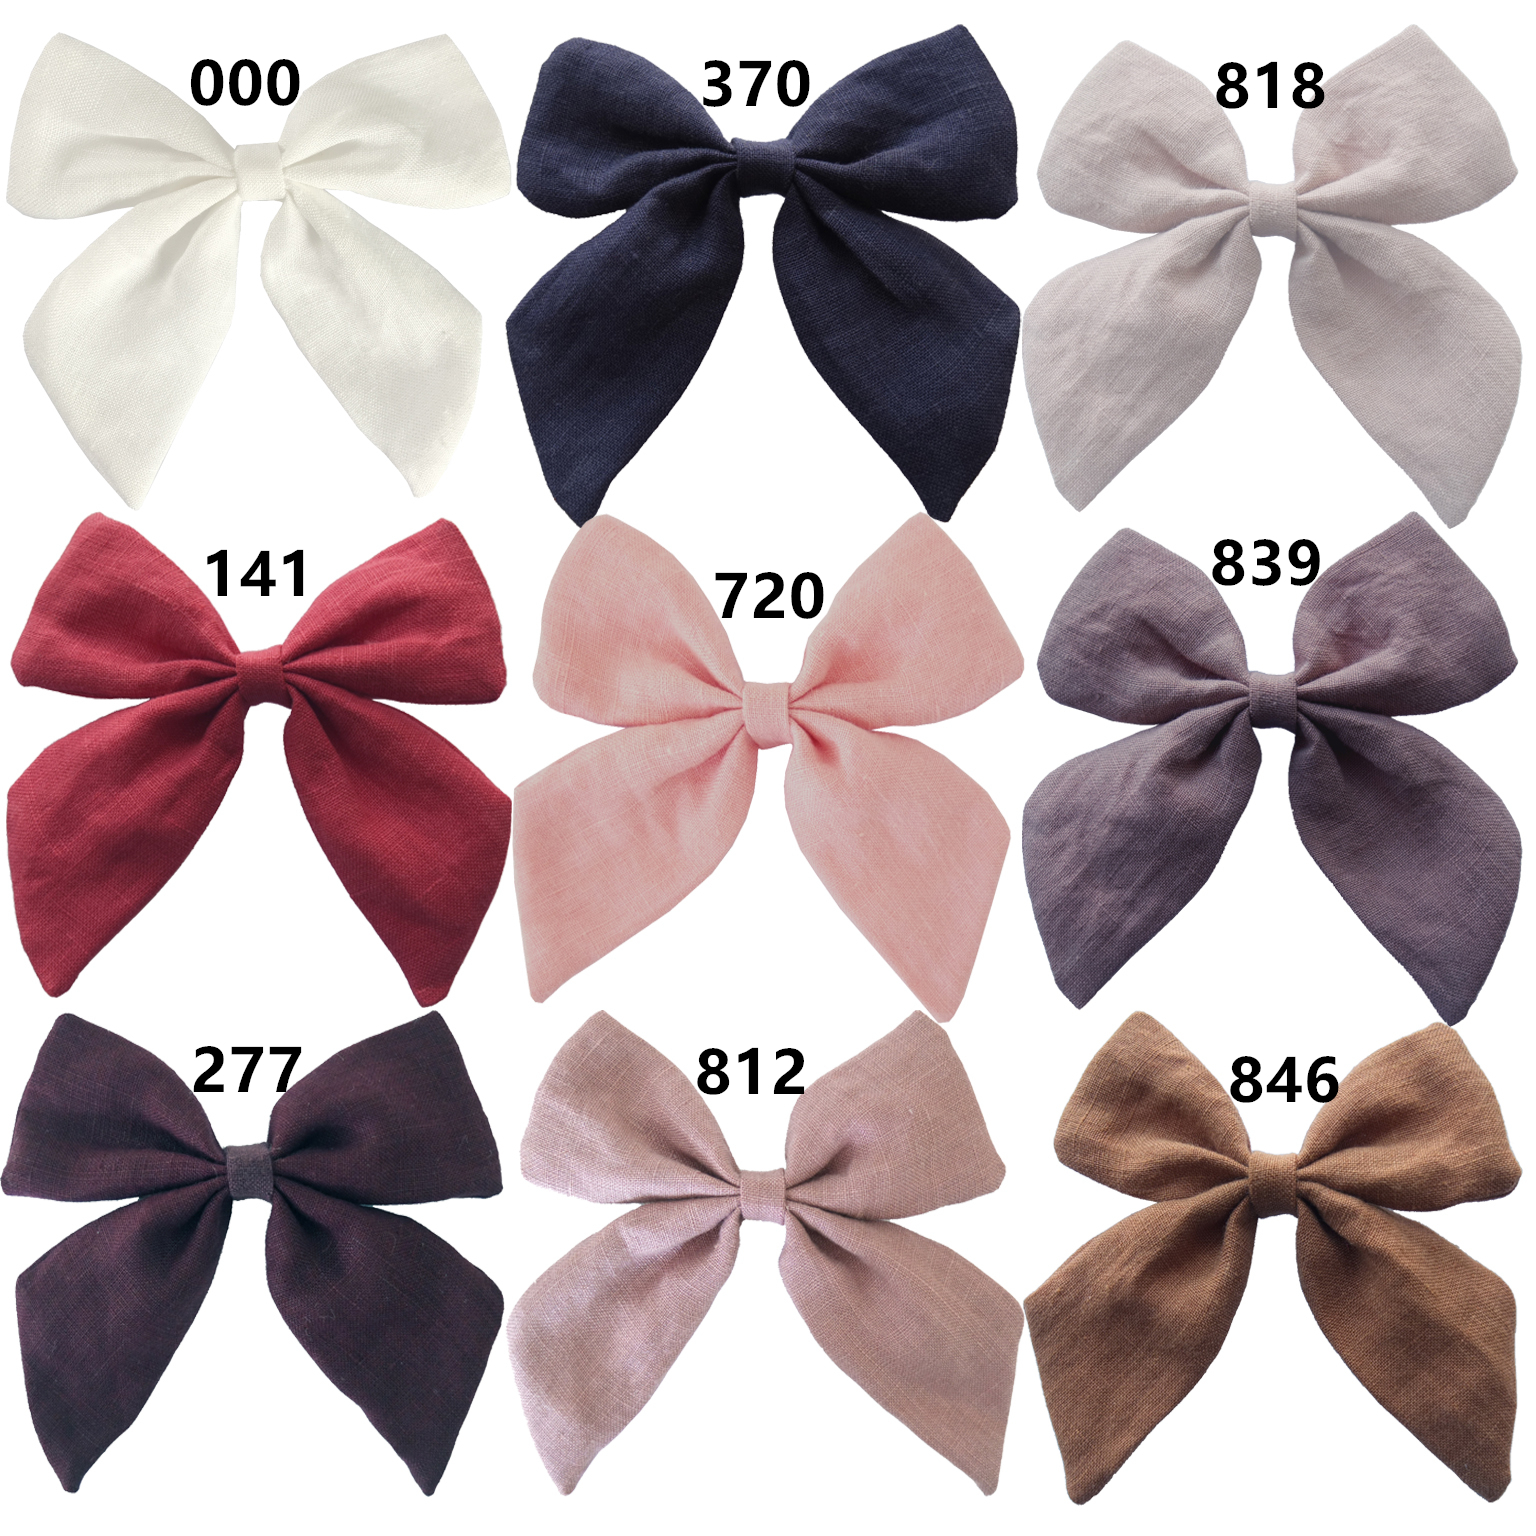 Hair Clips Headwear Hair-Accessories Fabric-Bows Boutique Girls Cotton Women Barrettes